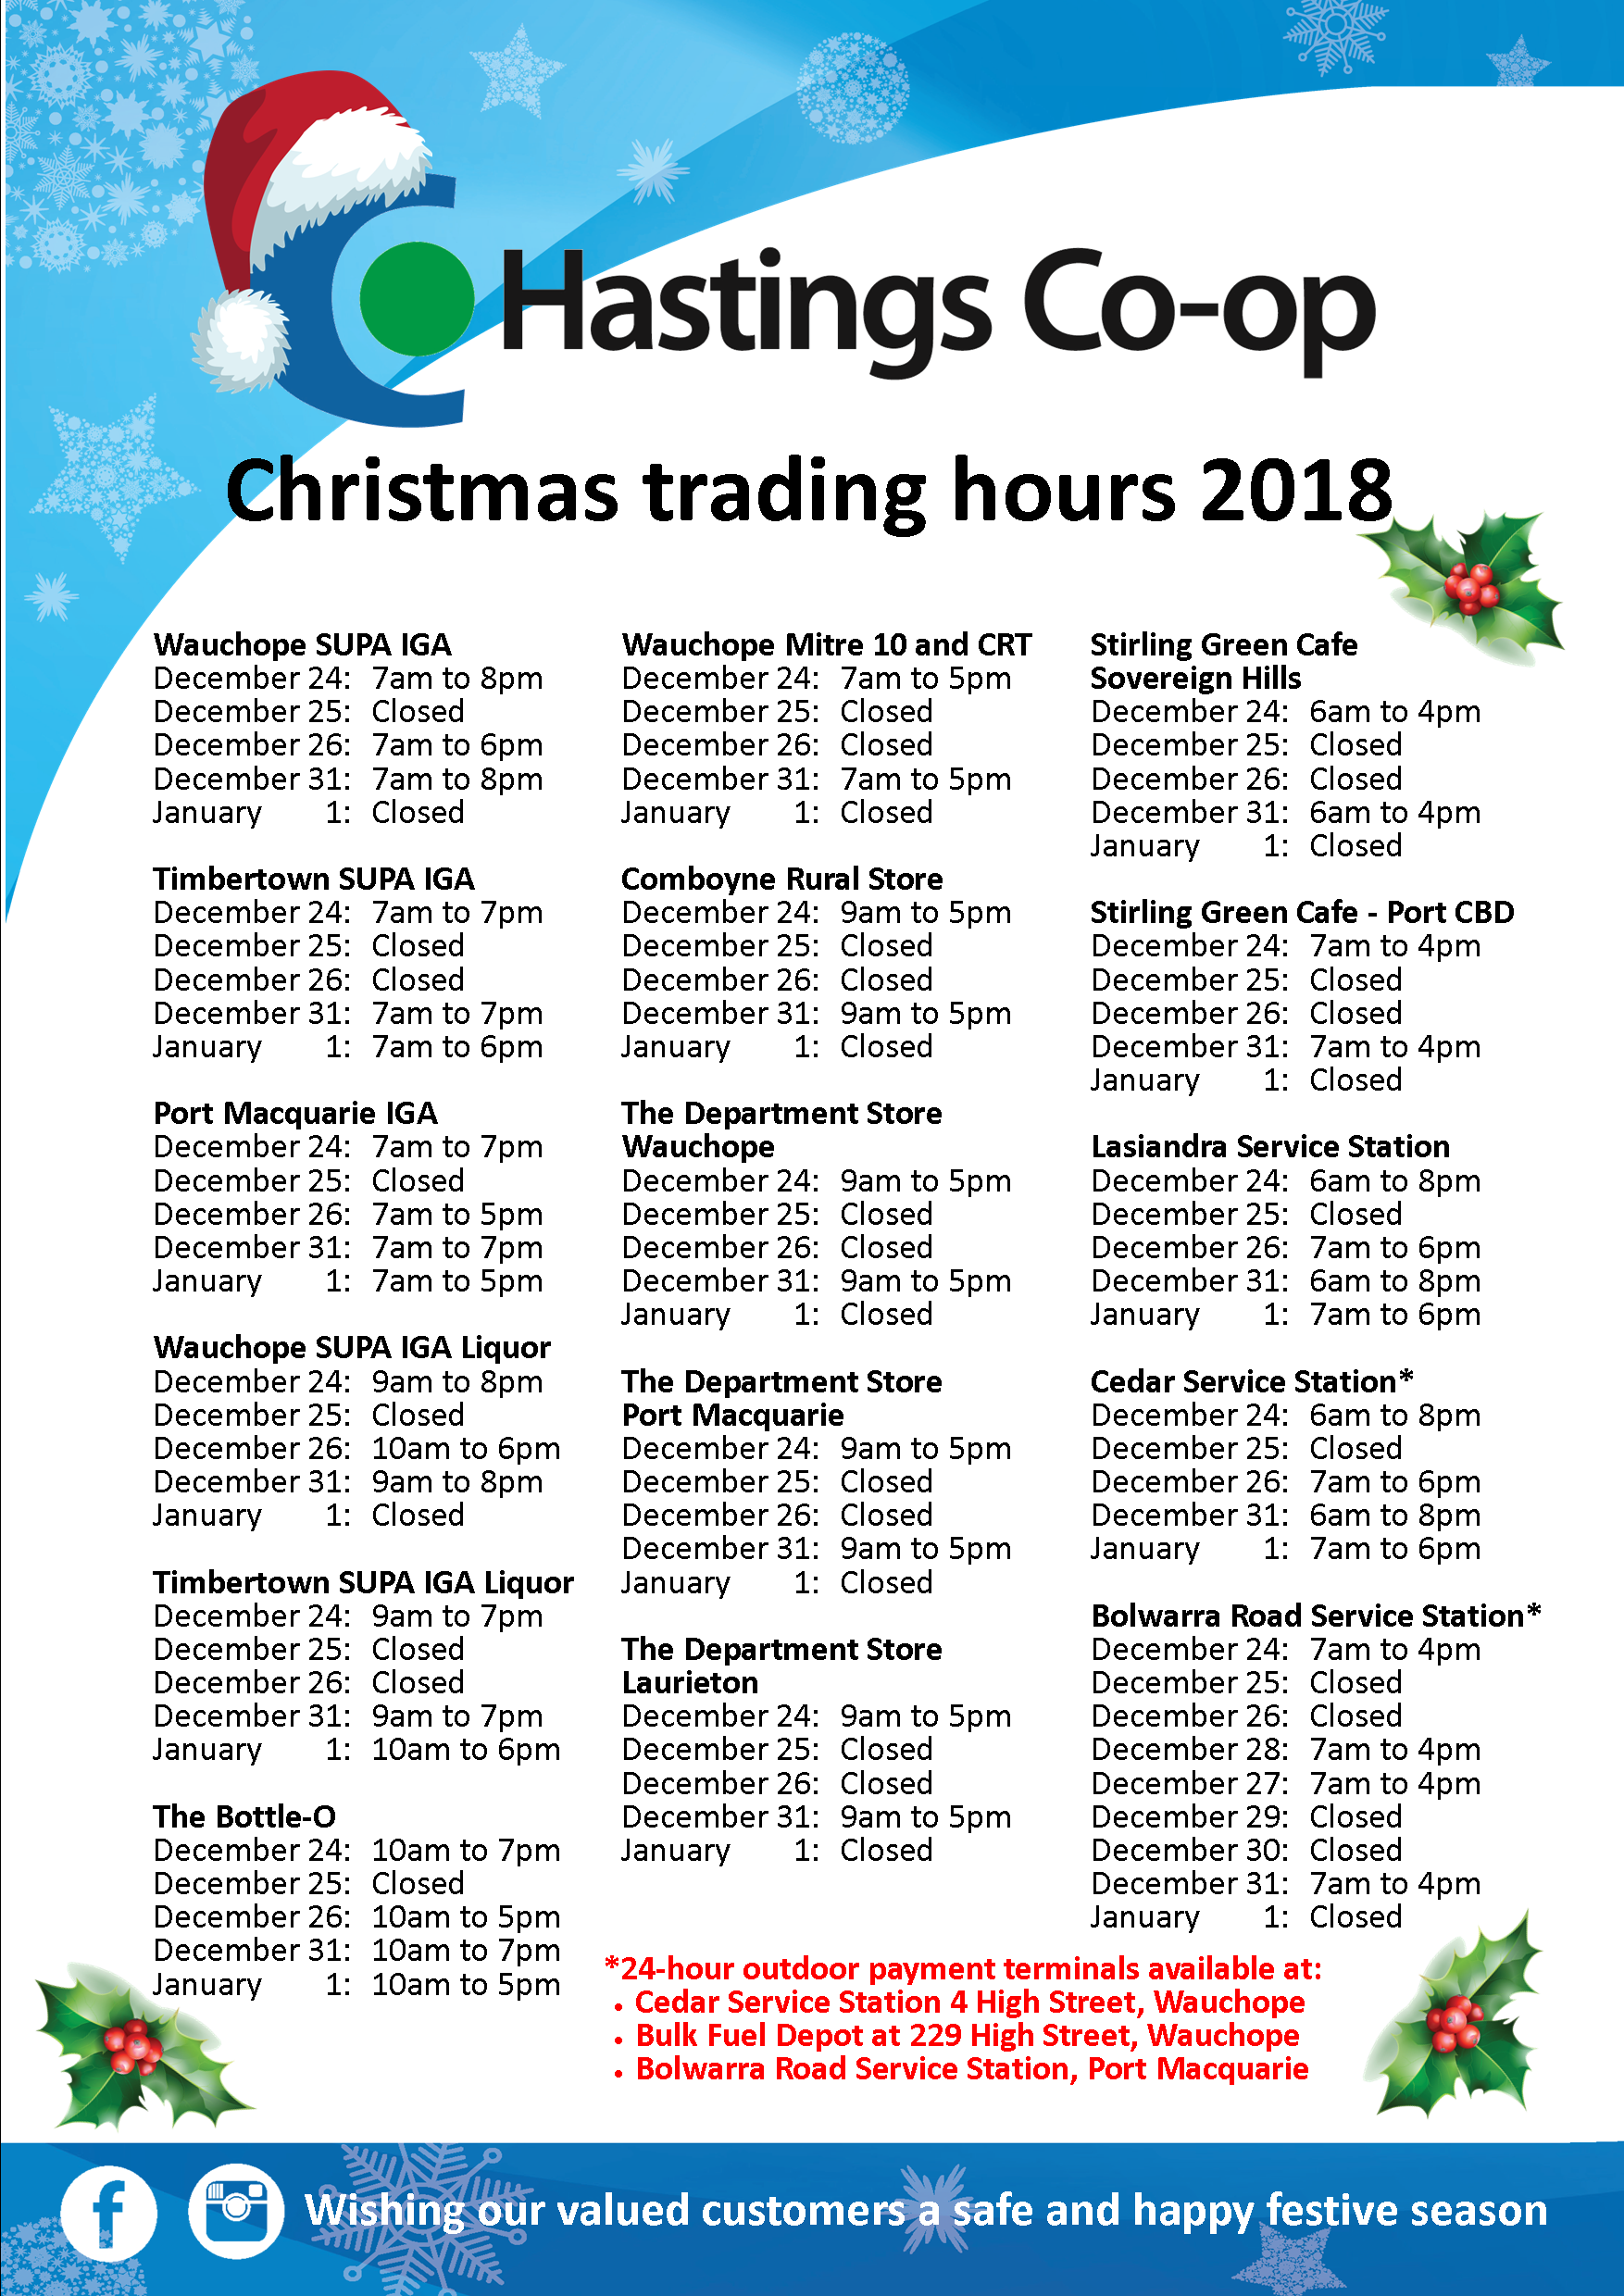 2018 Christmas trading hours | Hastings Co-op